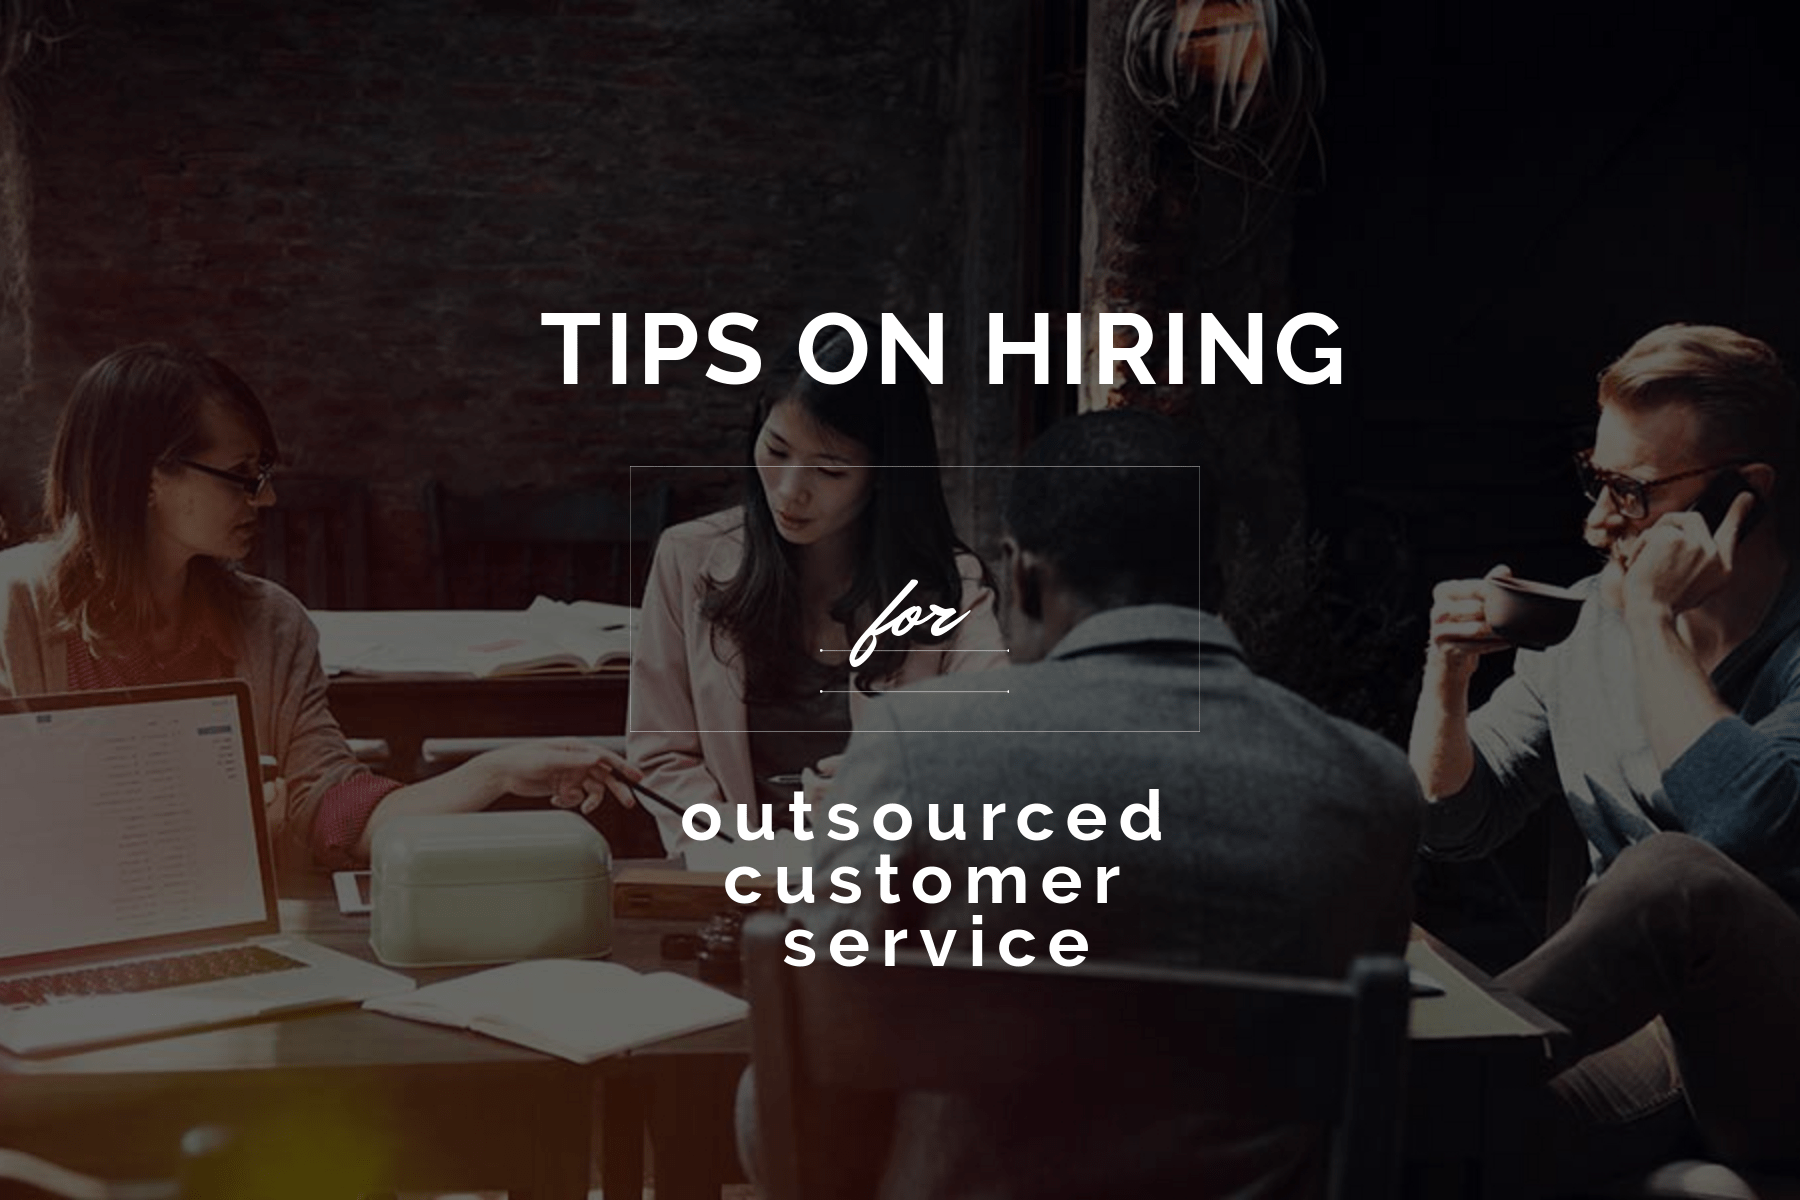 Tips on Hiring for Outsourced Customer Service